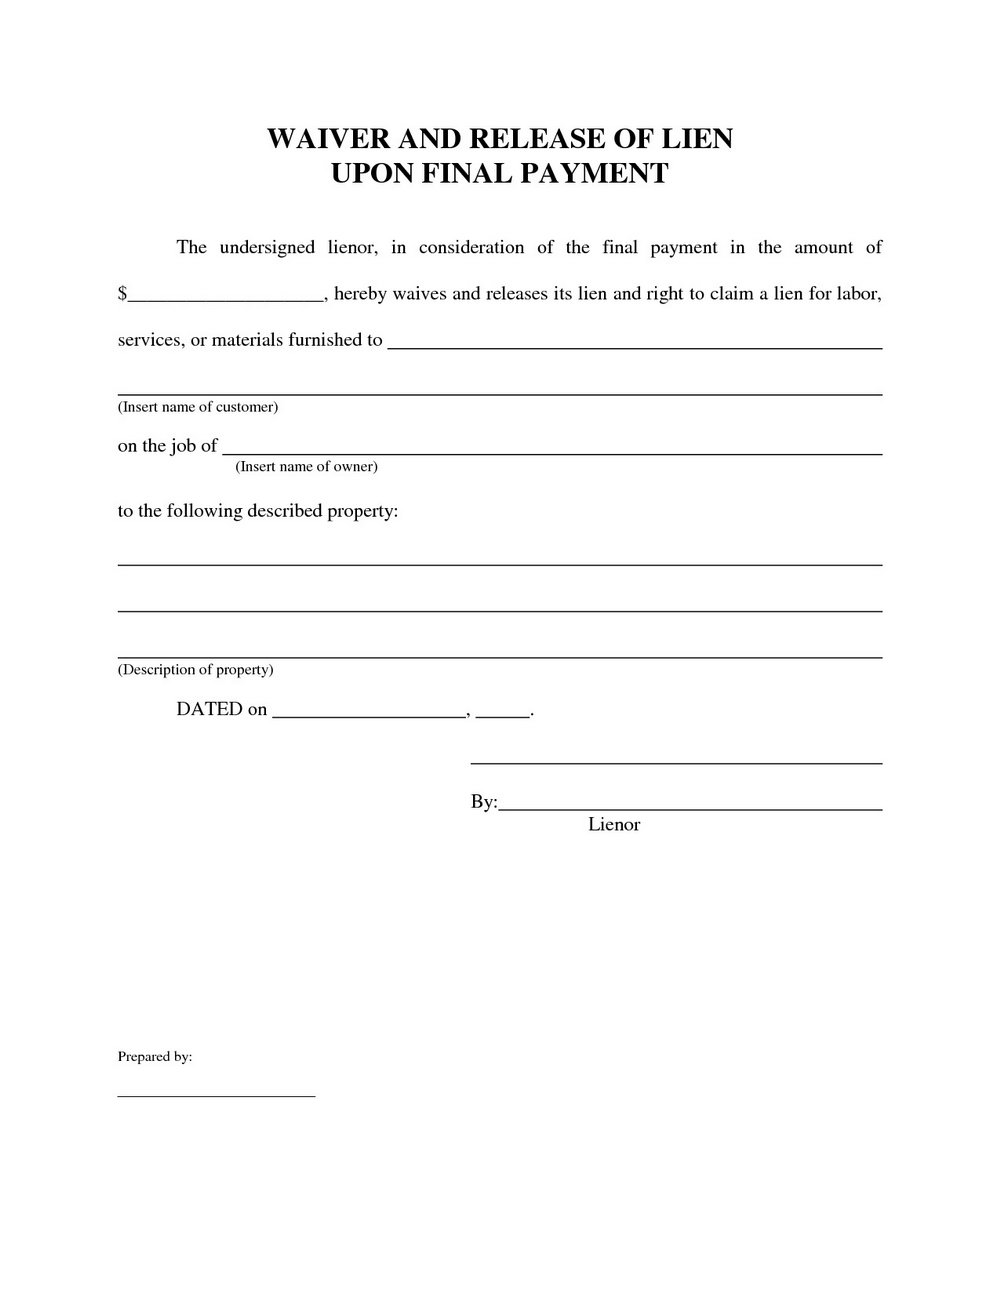 Lien Release Form Oklahoma